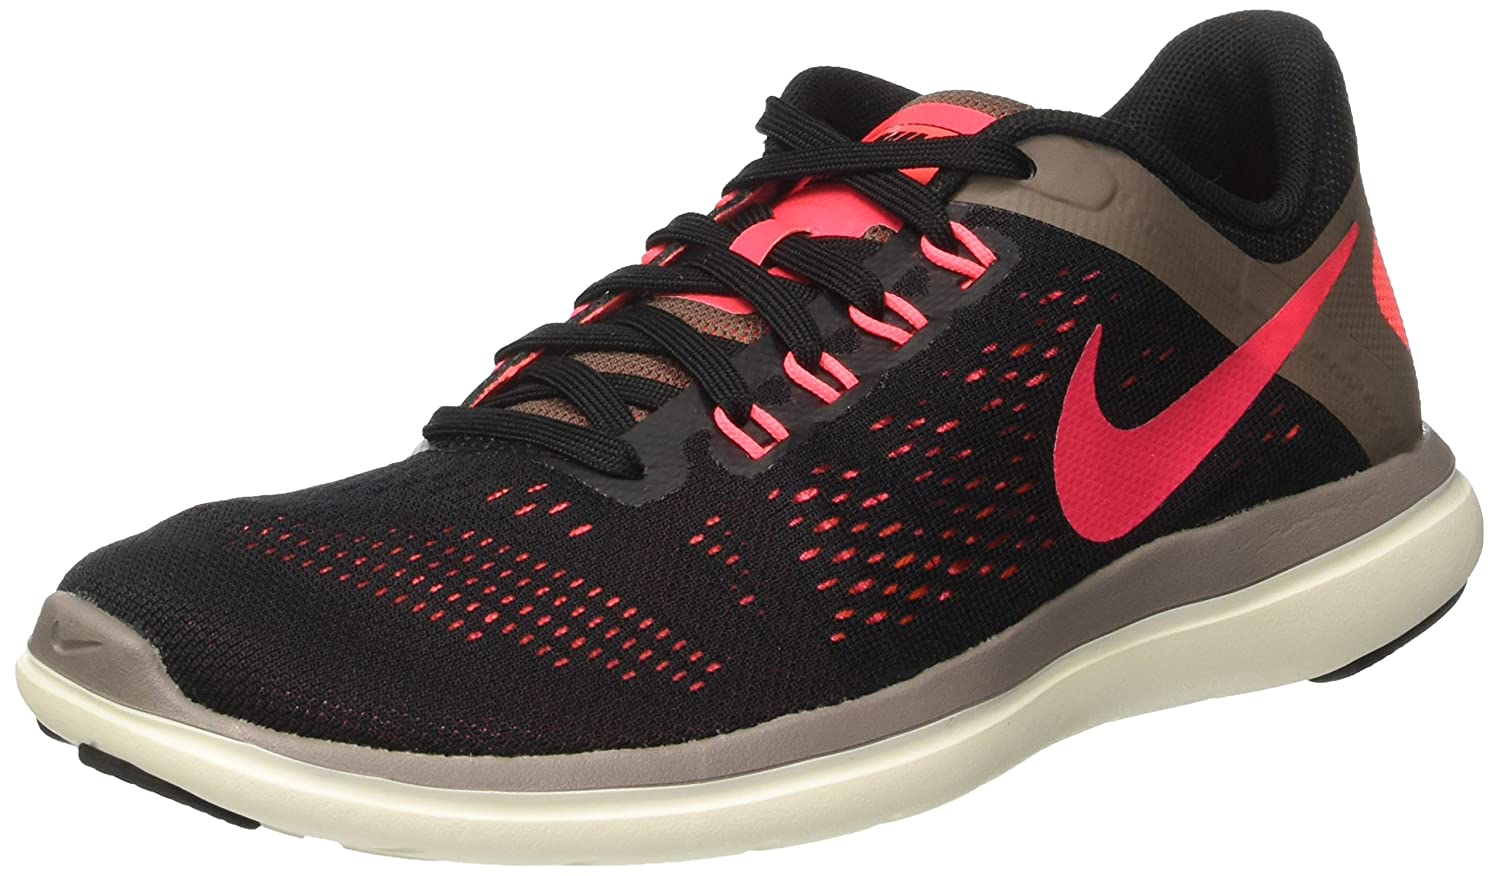 NIKE Women's Flex 2016 Rn Running Shoes B01N6LNCJM 9.5 B(M) US|Black/Hot Punch/Dark Mushroom/Sail